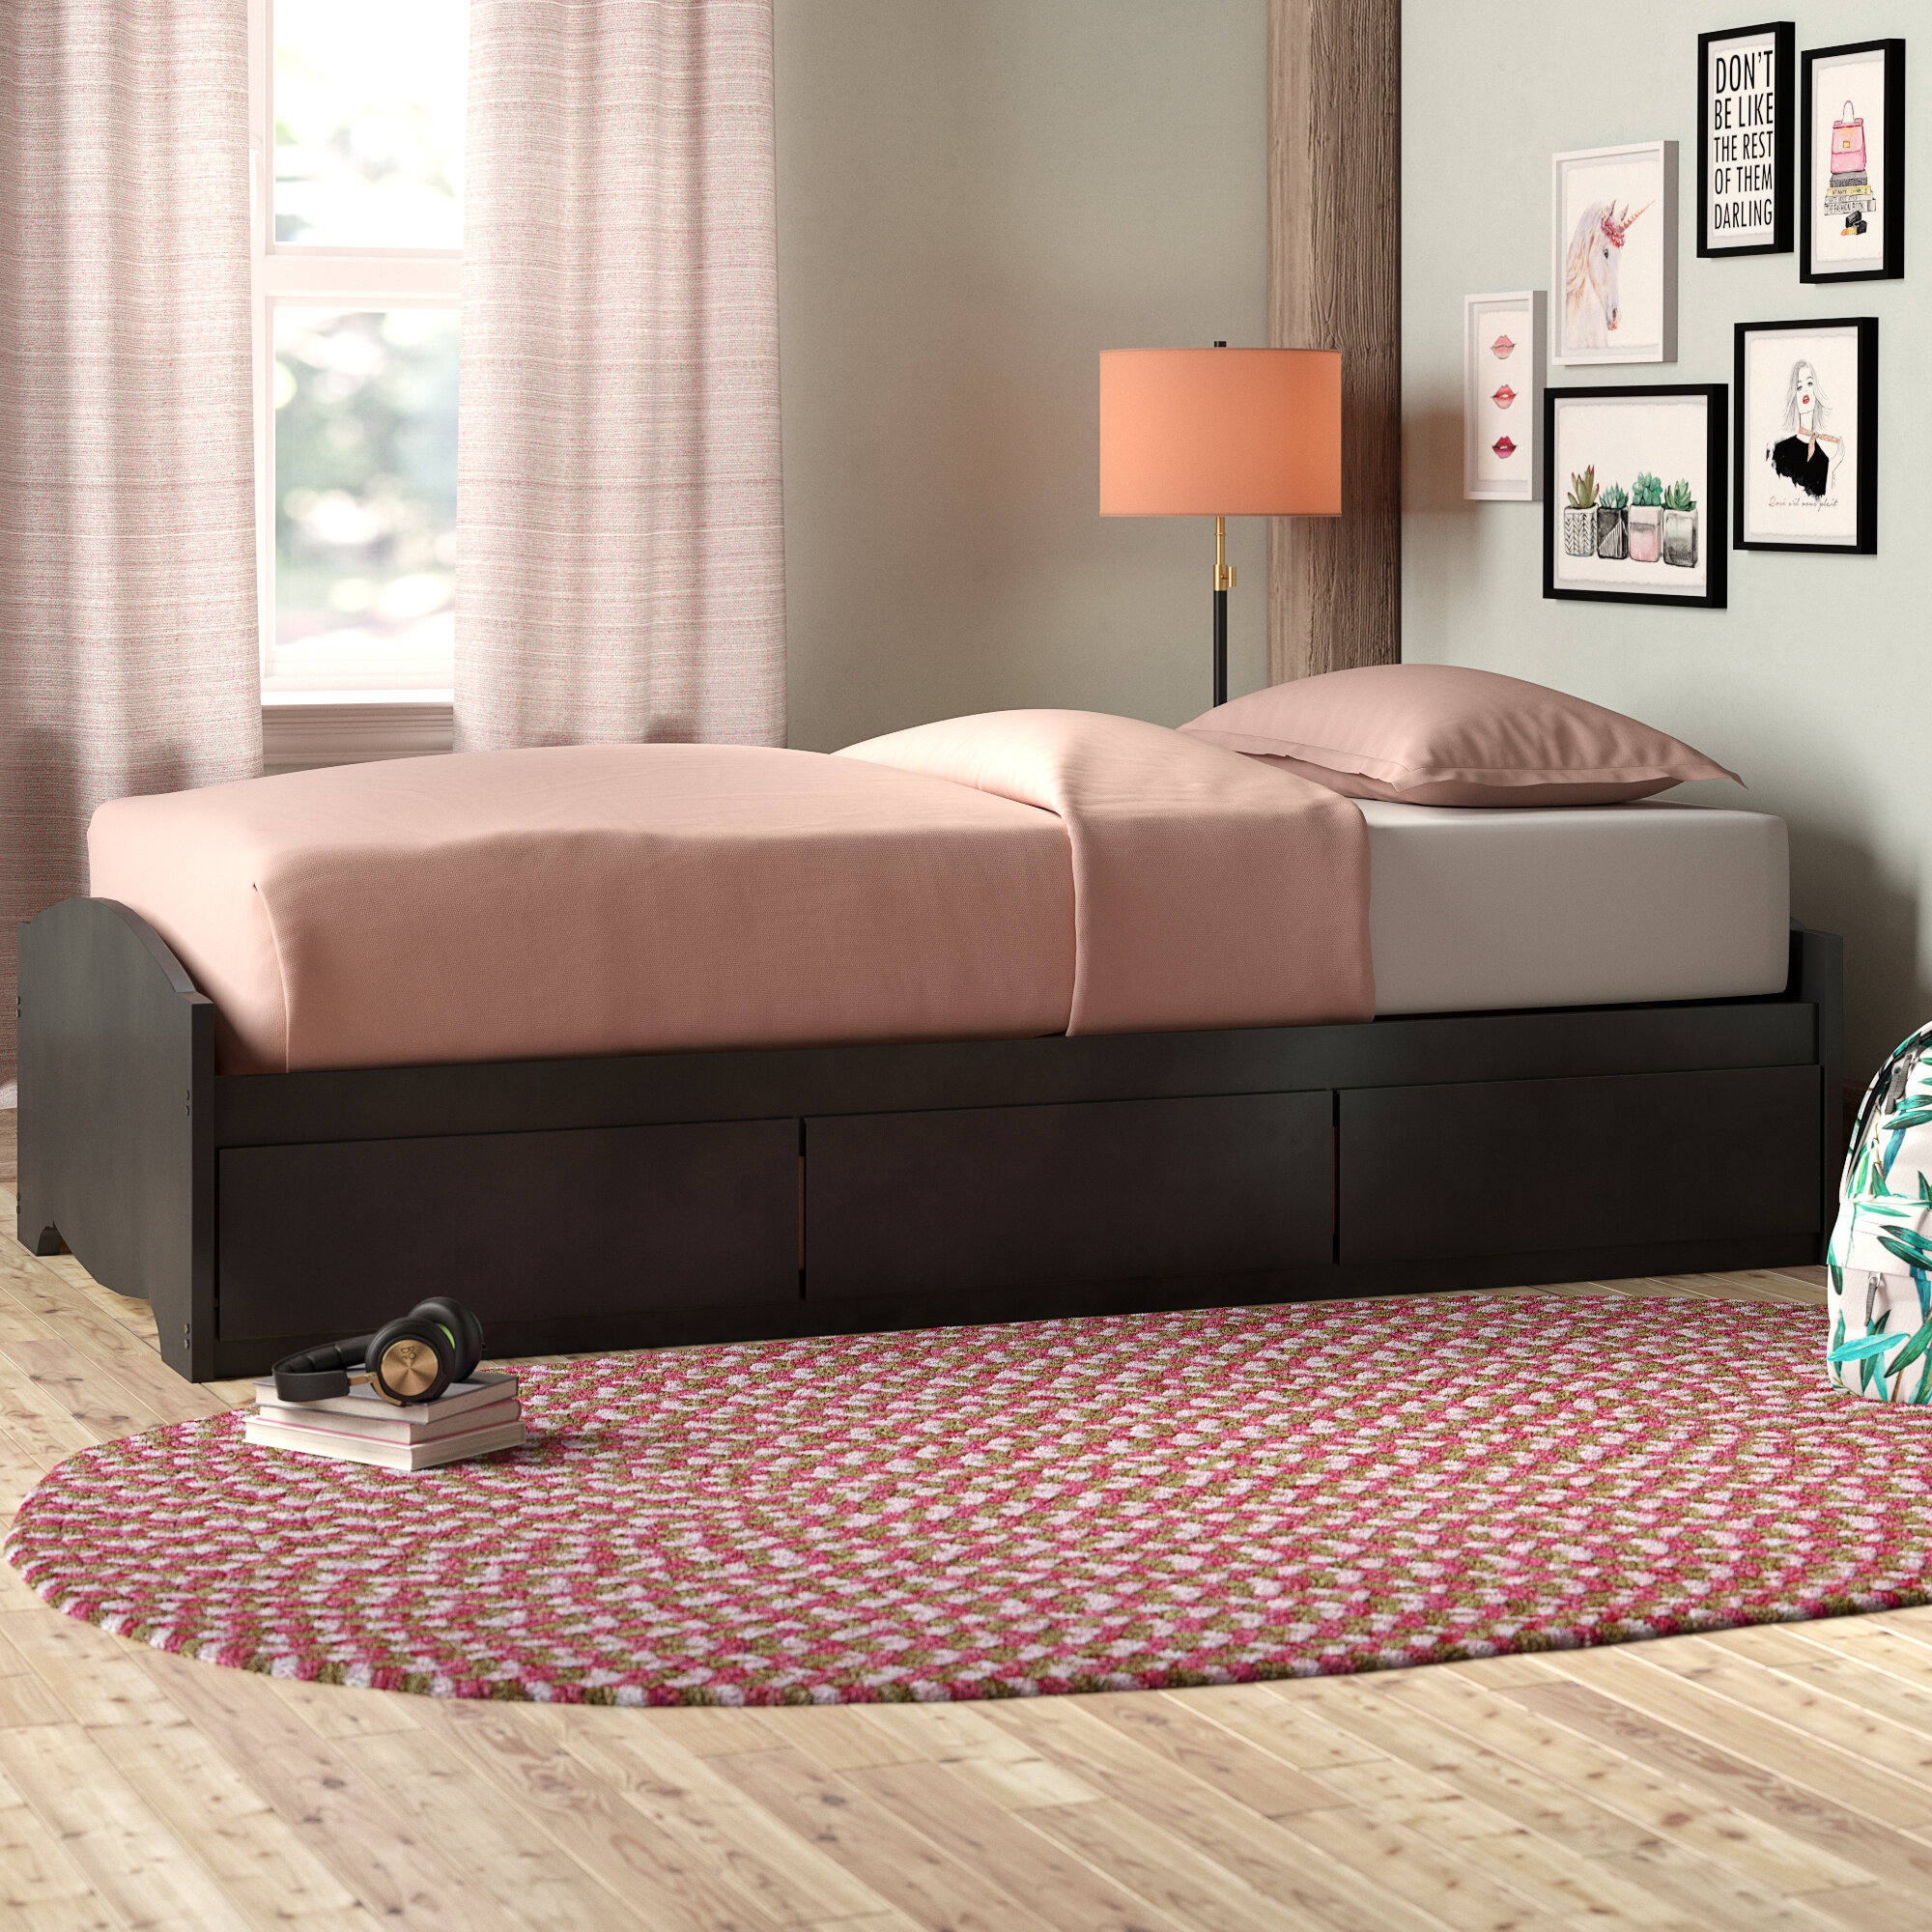 Picture of: Harriet Bee Nolanville Extra Long Twin Mate S Captain S Bed With Storage Reviews Wayfair